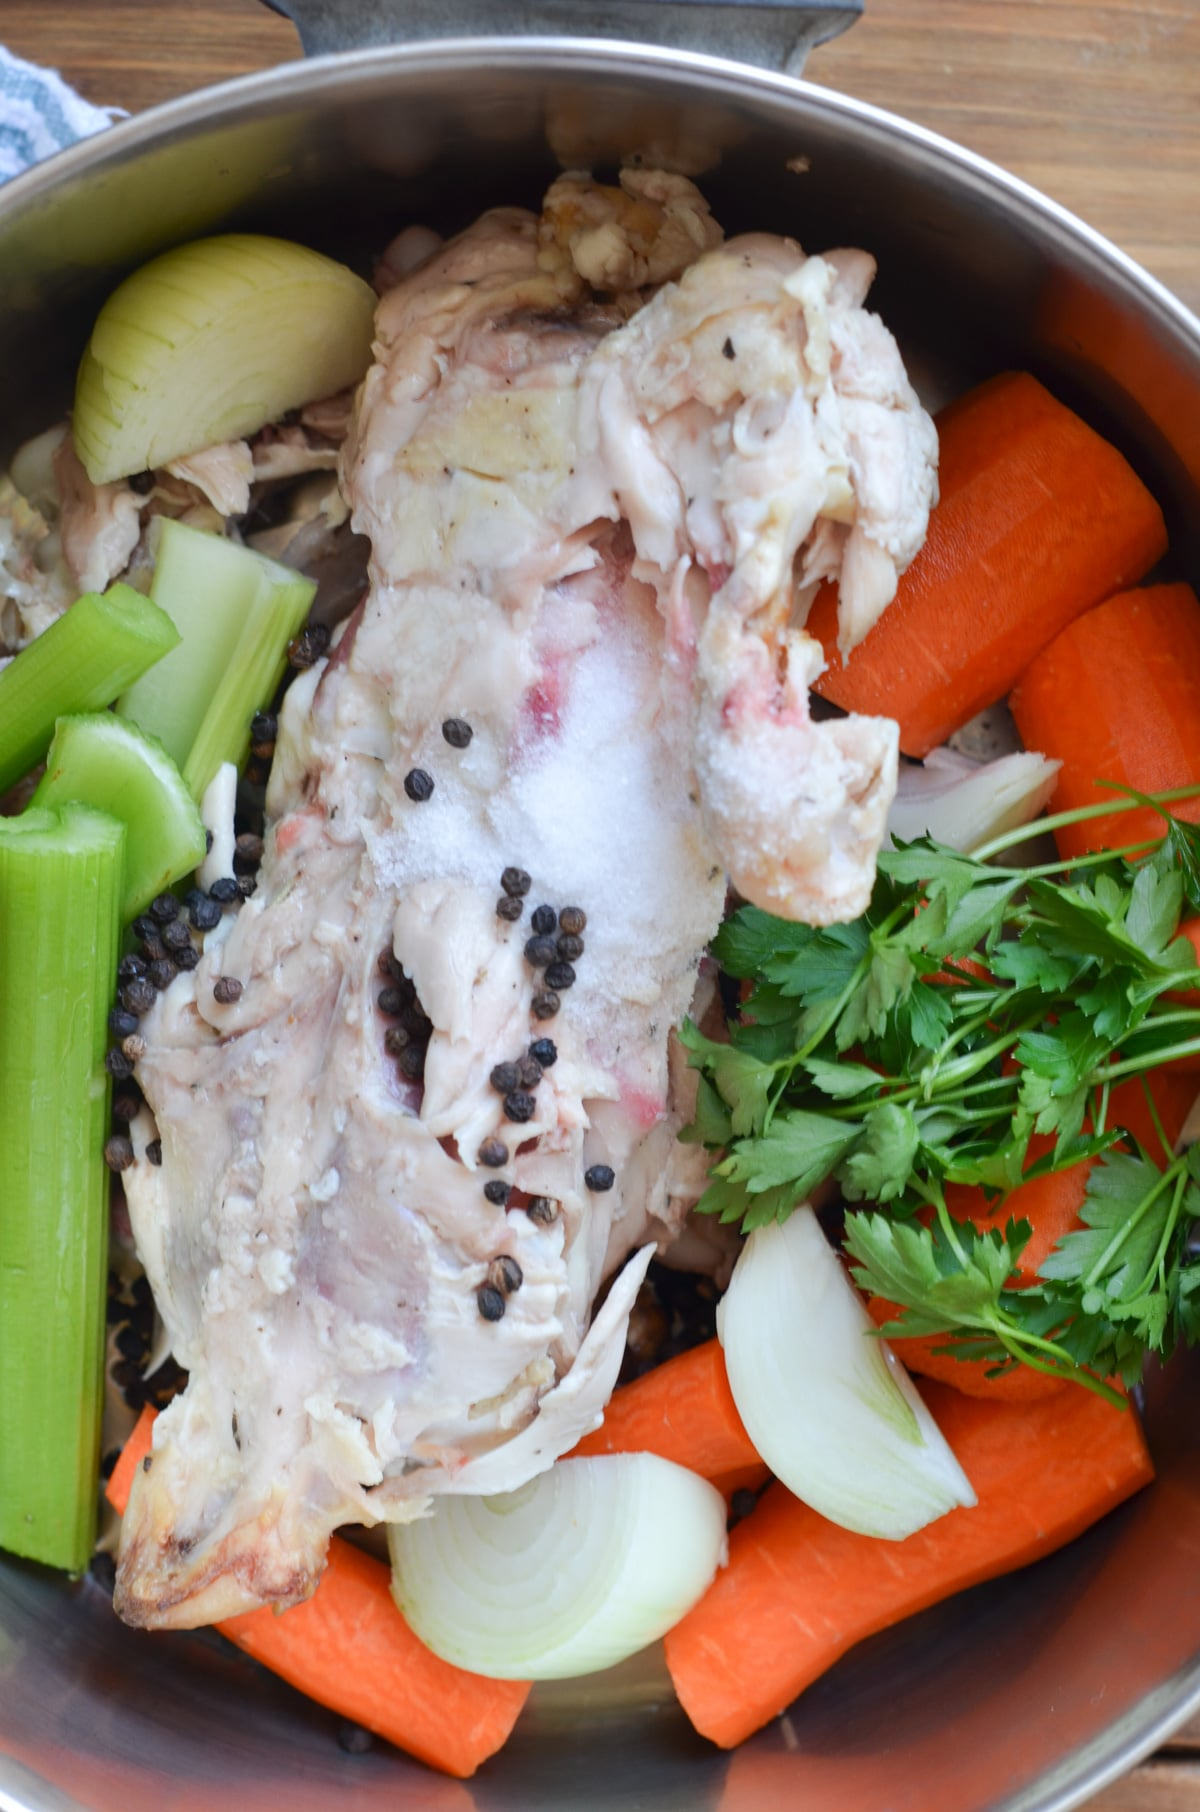 vegetables, chicken bones, herbs, spices in bottom of soup pot.